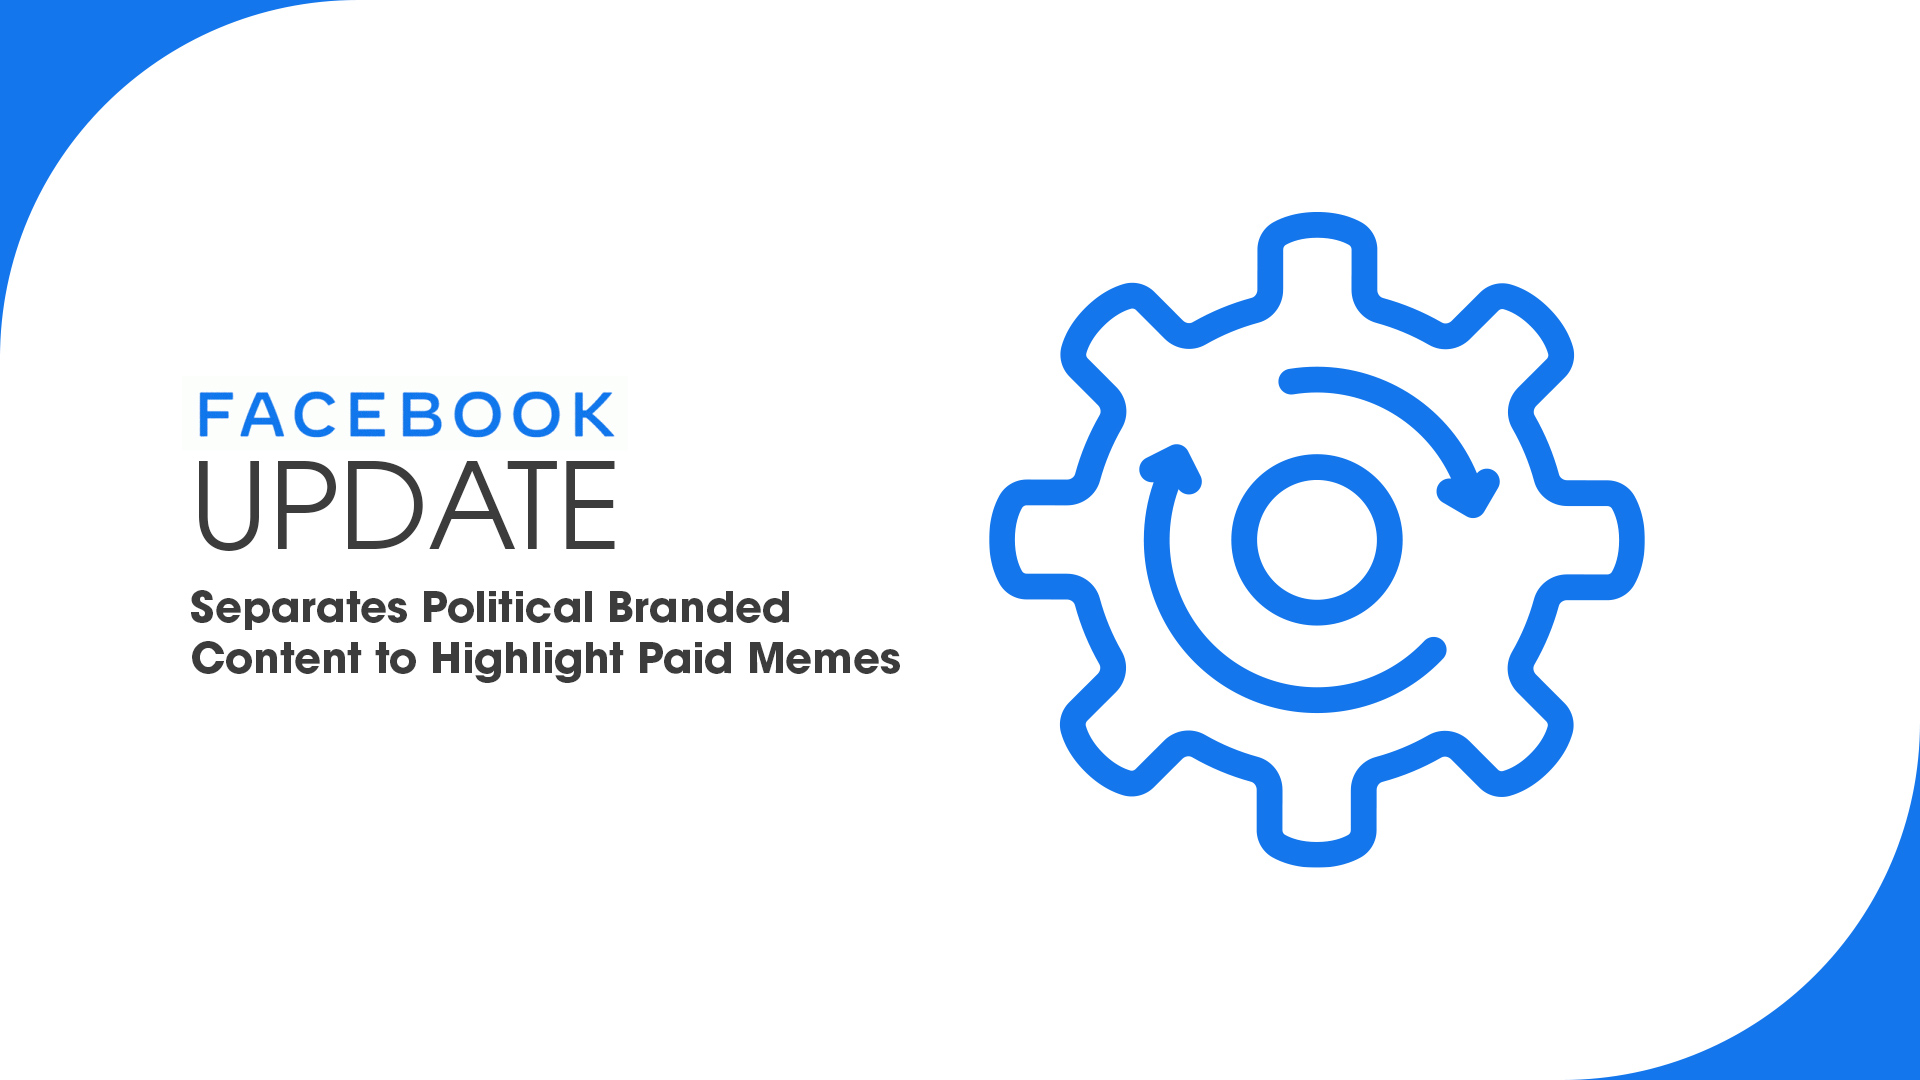 Facebook Update - Separates Political Branded Content to Highlight Paid Memes